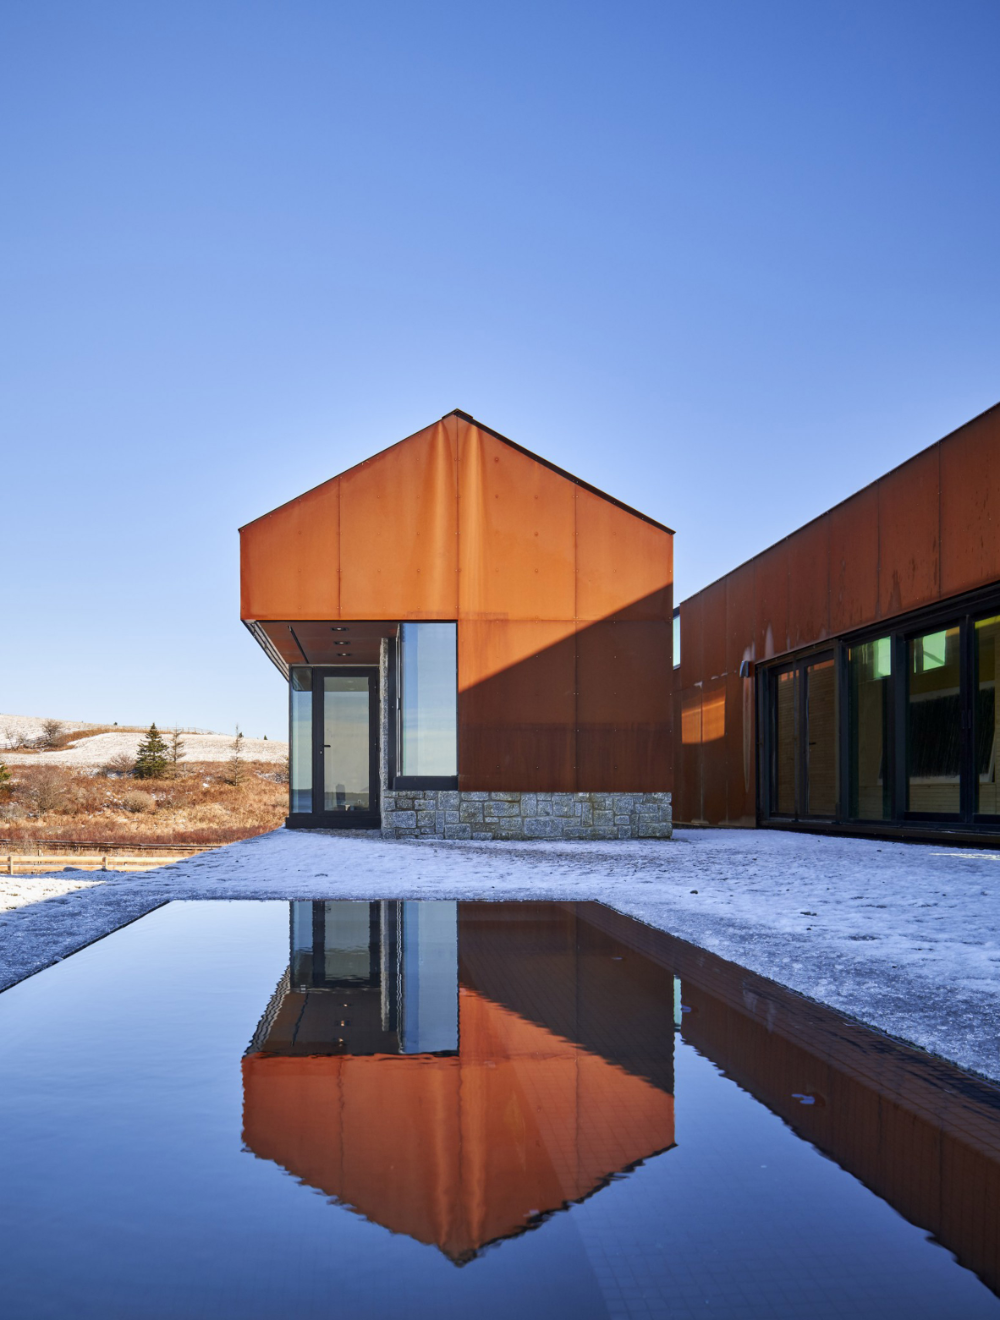 Smith Residence By Mackay Lyons Sweetapple Is A Gabled Steel Village Architecture Building Design Facade Cladding